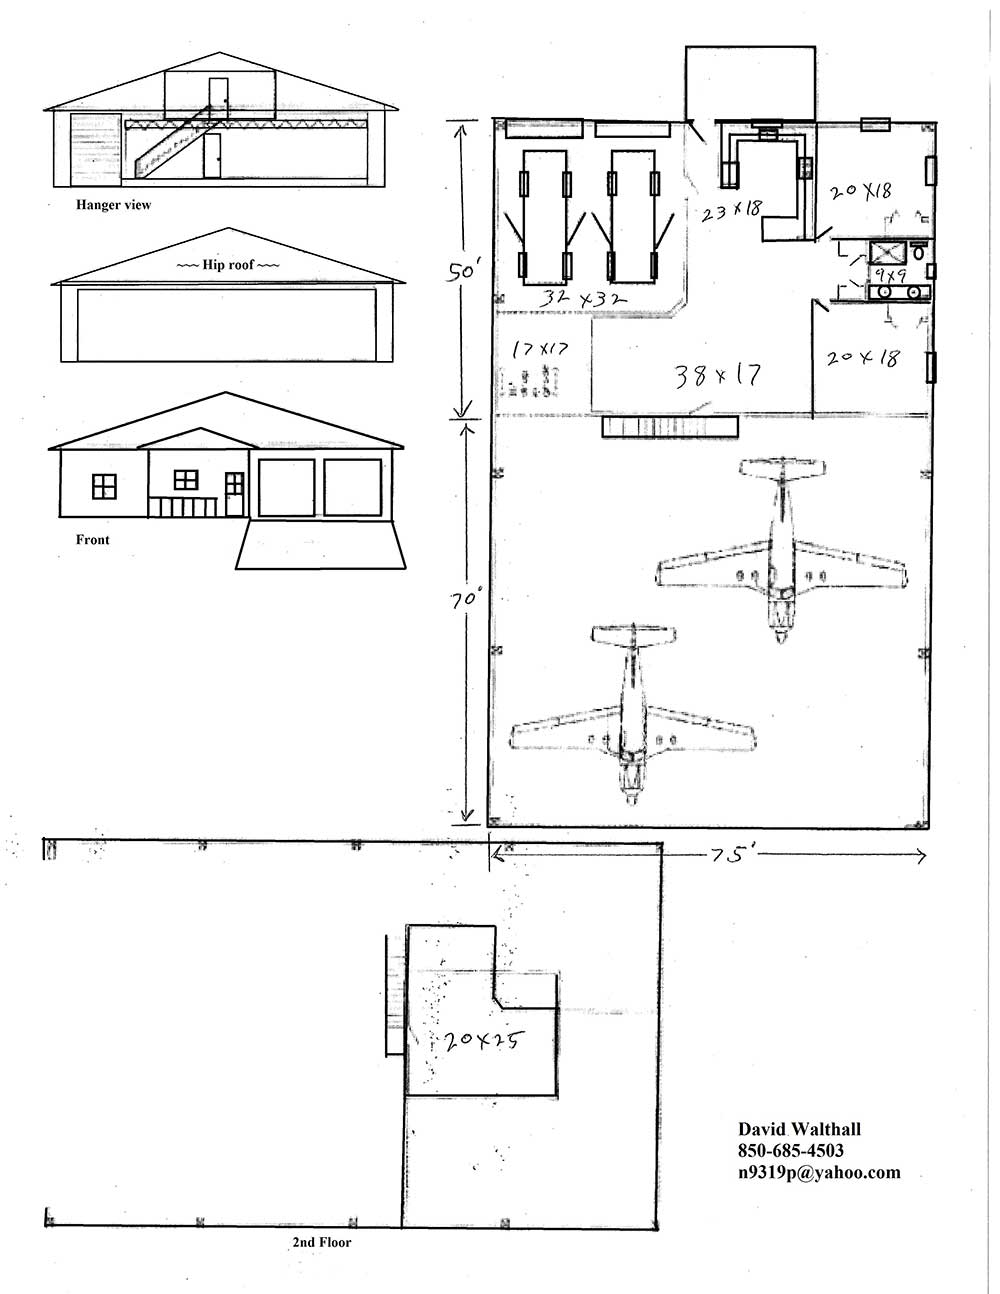 Hangar home floor plans for Design your house plans